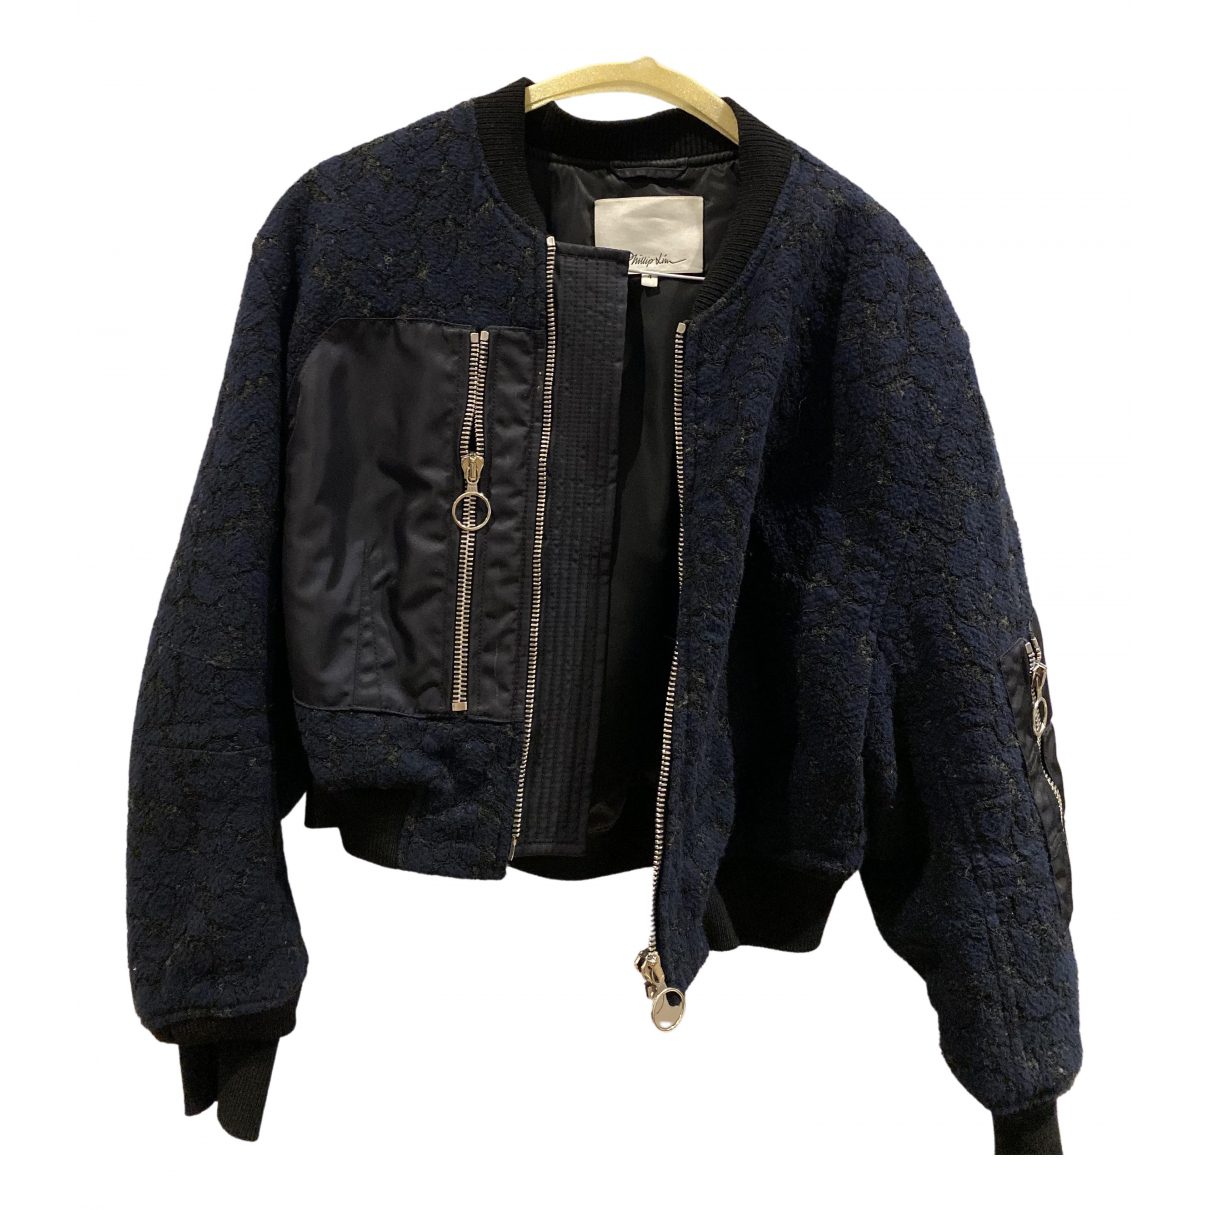 3.1 Phillip Lim \N Navy jacket for Women 4 US